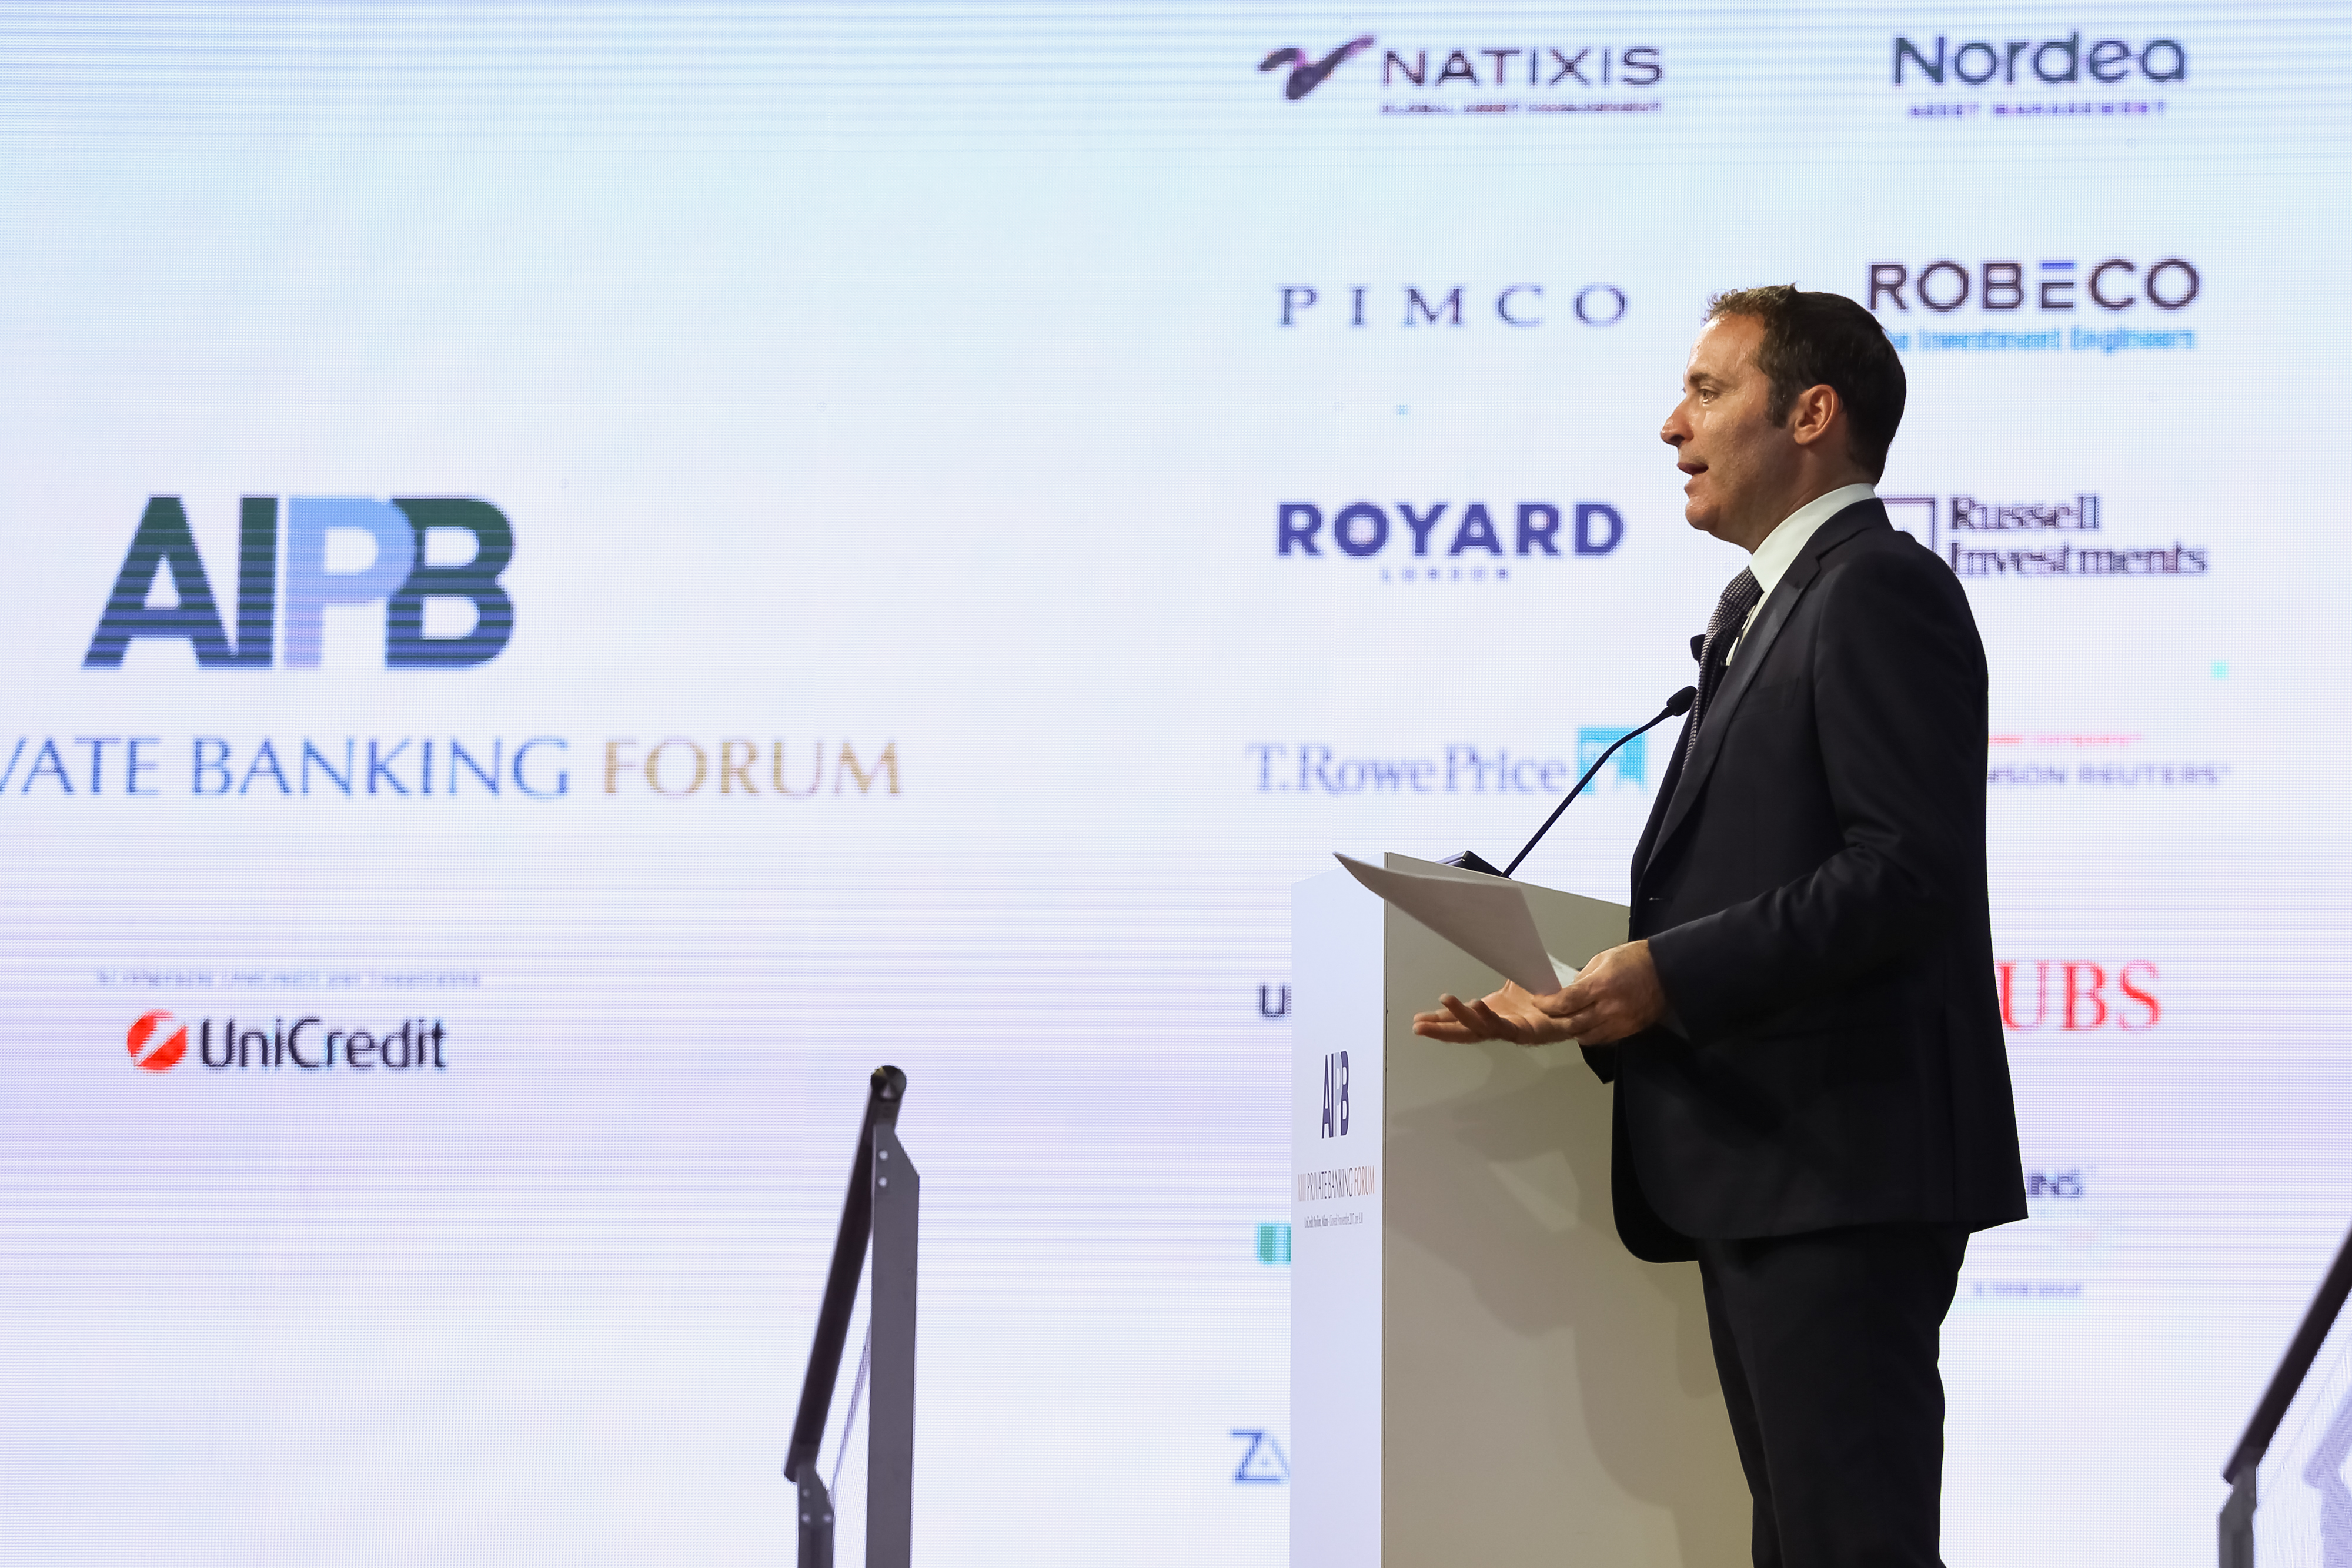 XIII Private Banking Forum